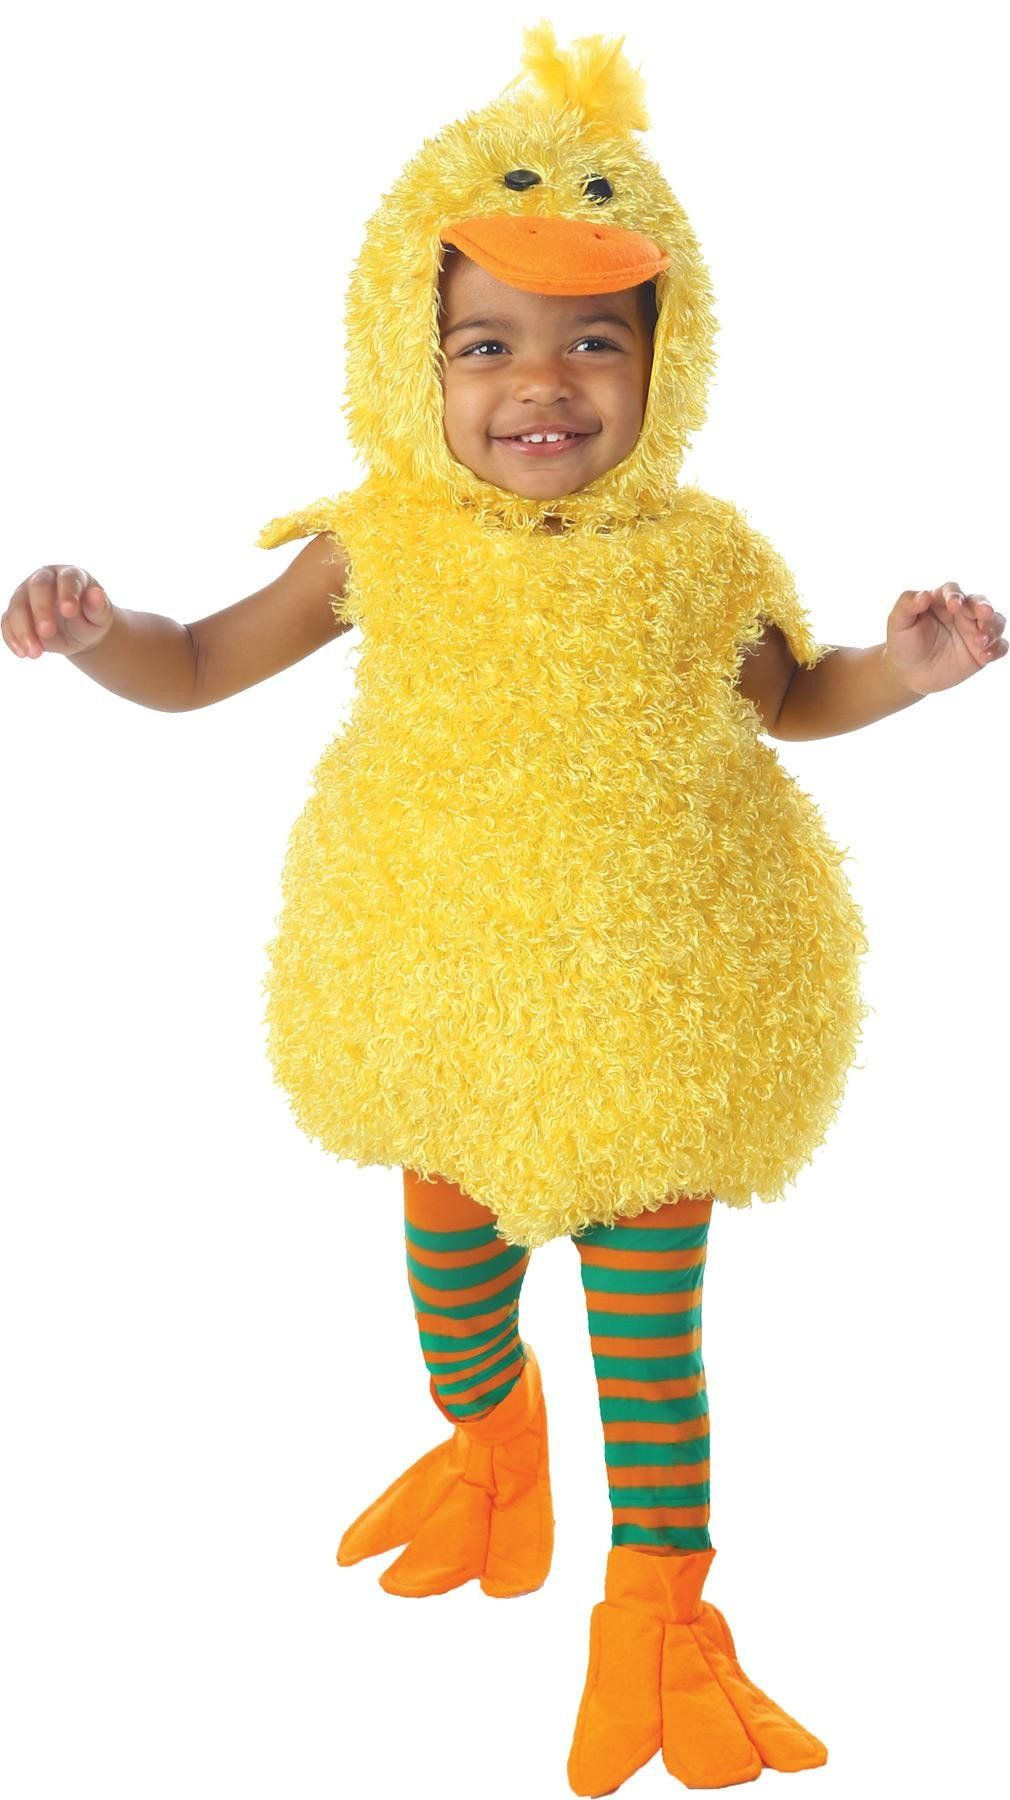 baby duck tod 6/12m | best baby and newborn halloween costumes (0